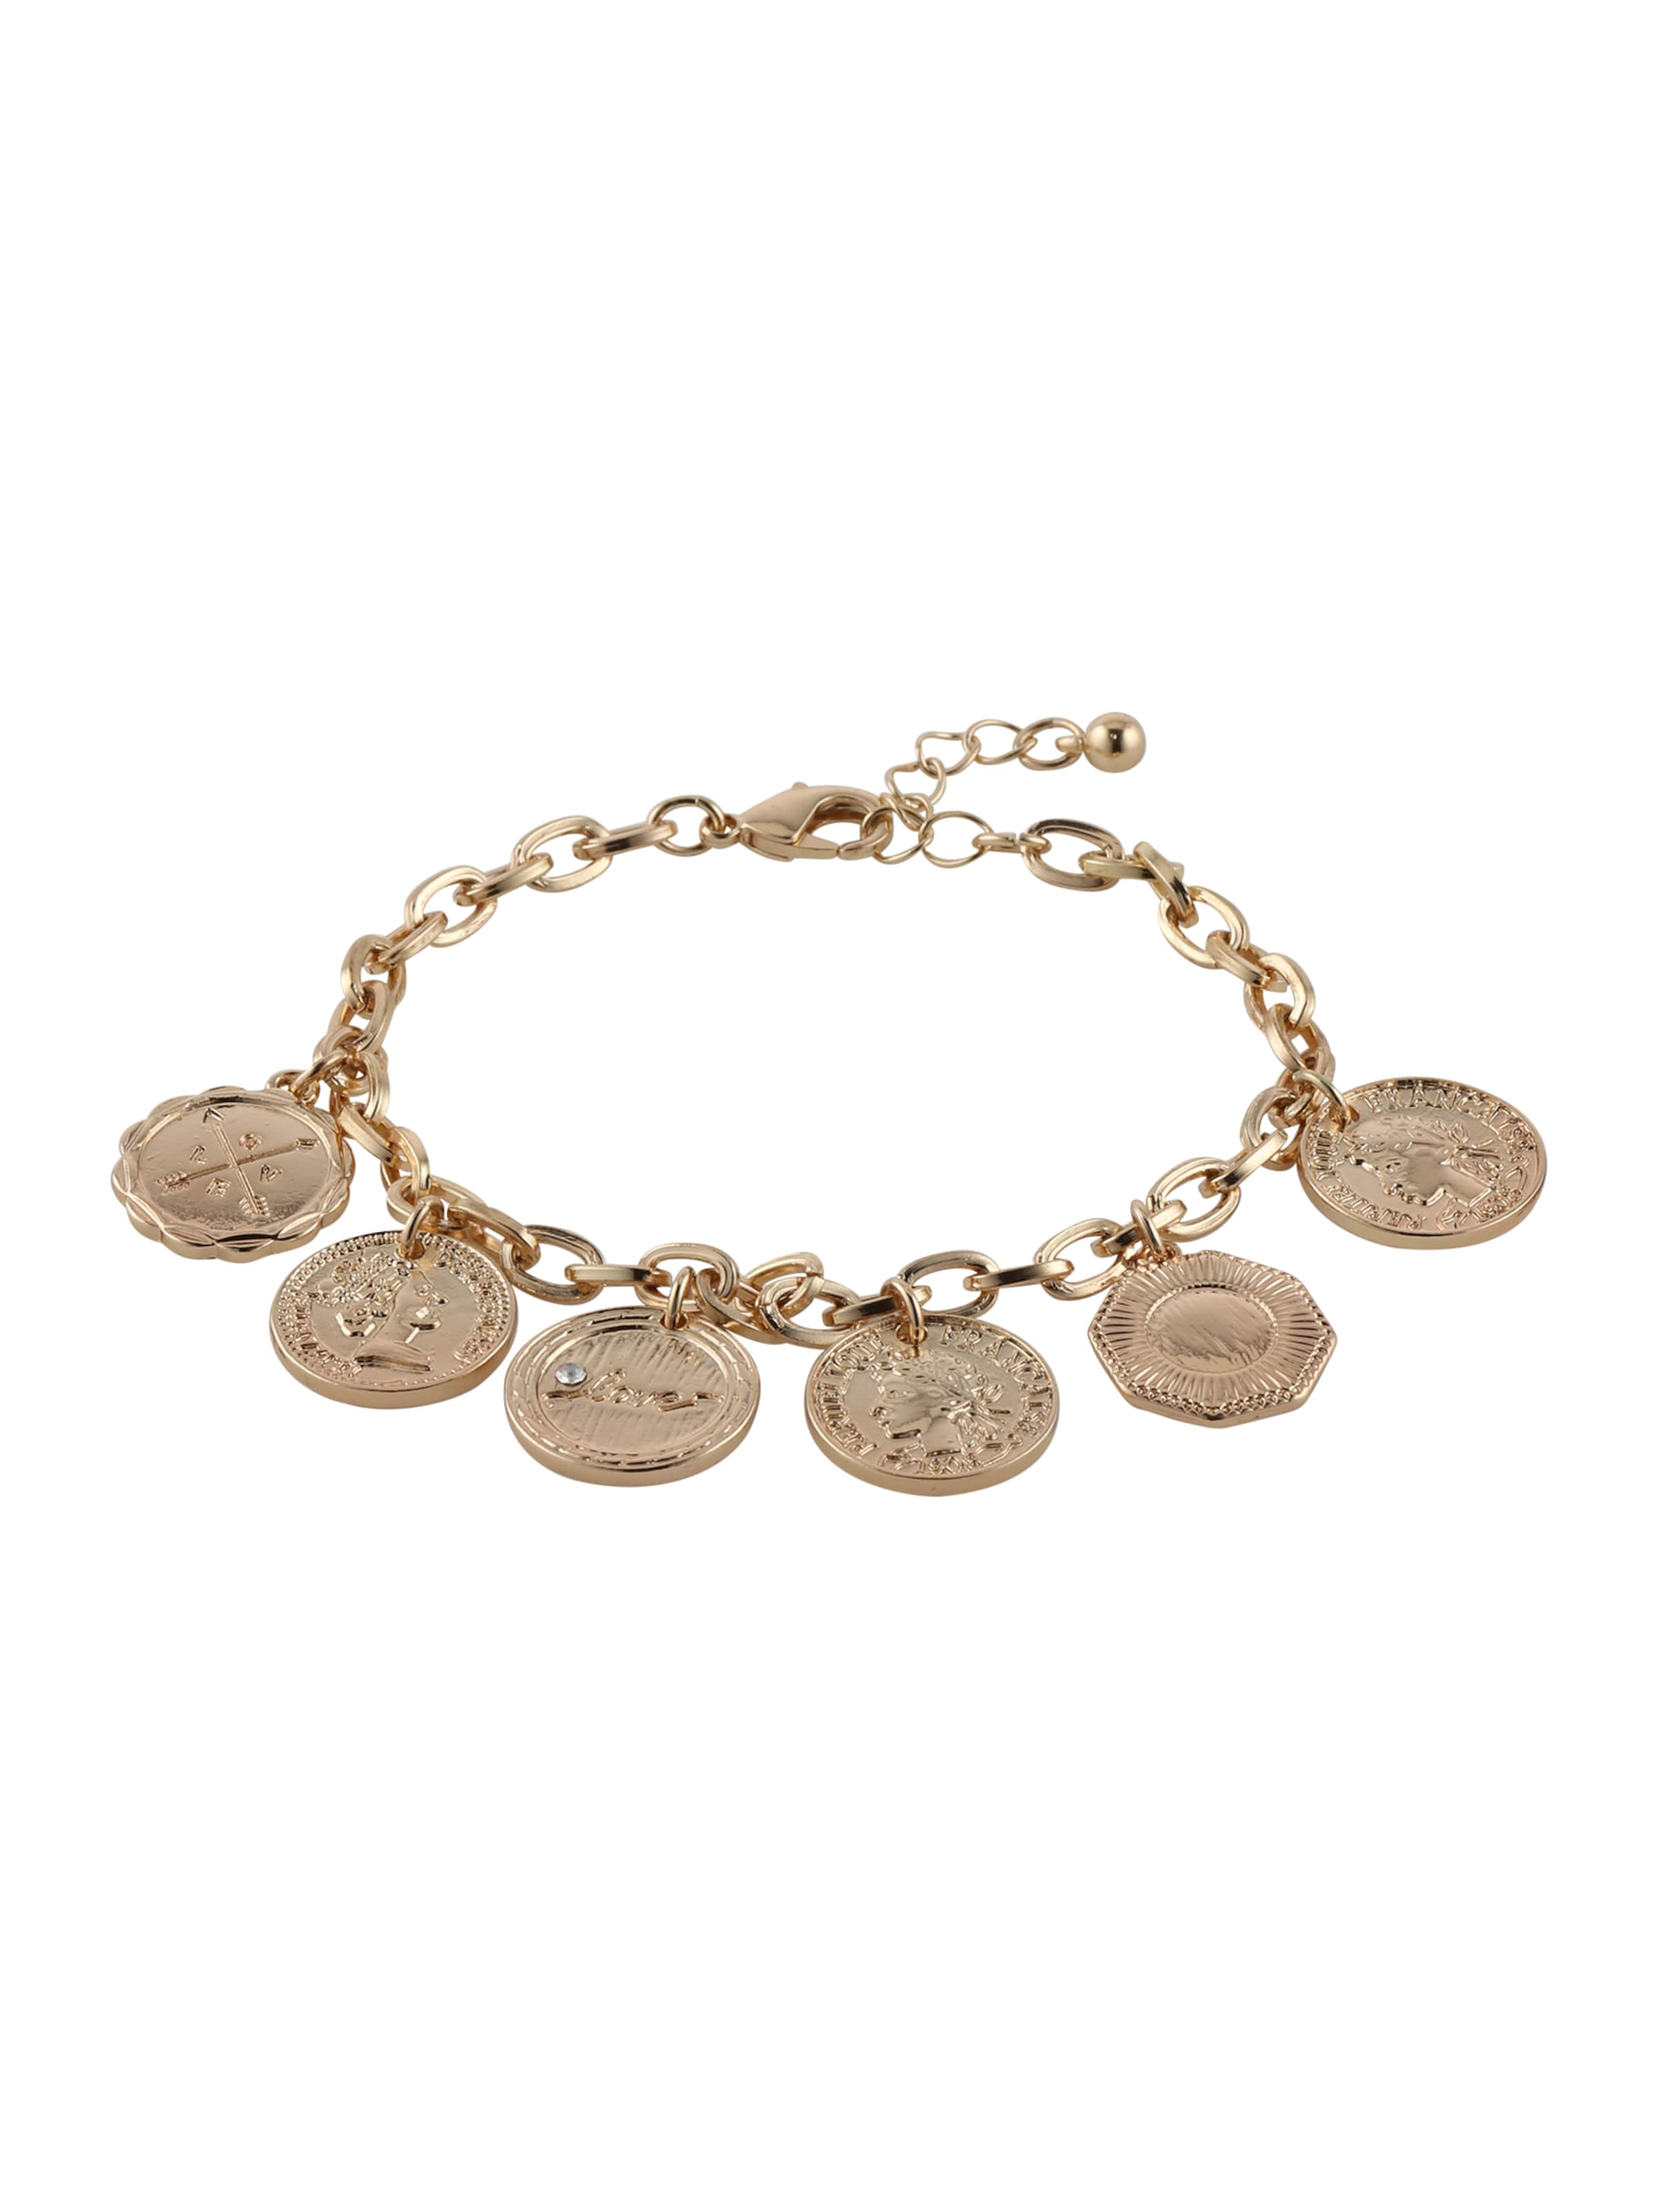 About 'leticia' Armband You Gold In 4Rj3AS5Lcq